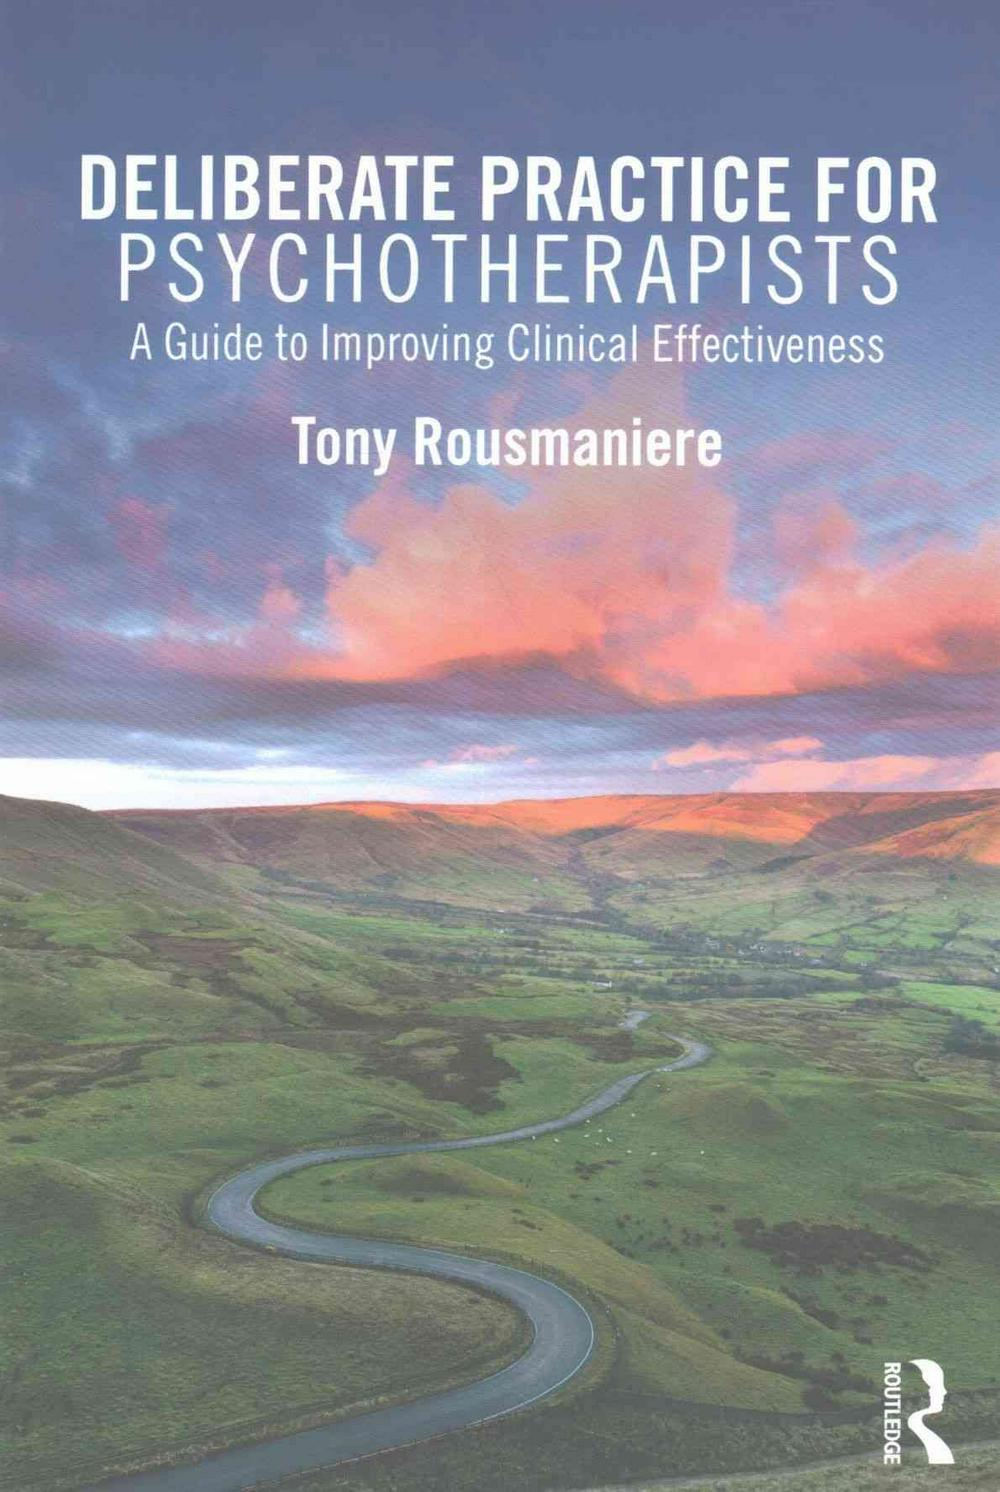 Deliberate Practice for Psychotherapists: A Guide to Improving Clinical Effectiveness by Tony Rousmaniere, ISBN: 9781138203204